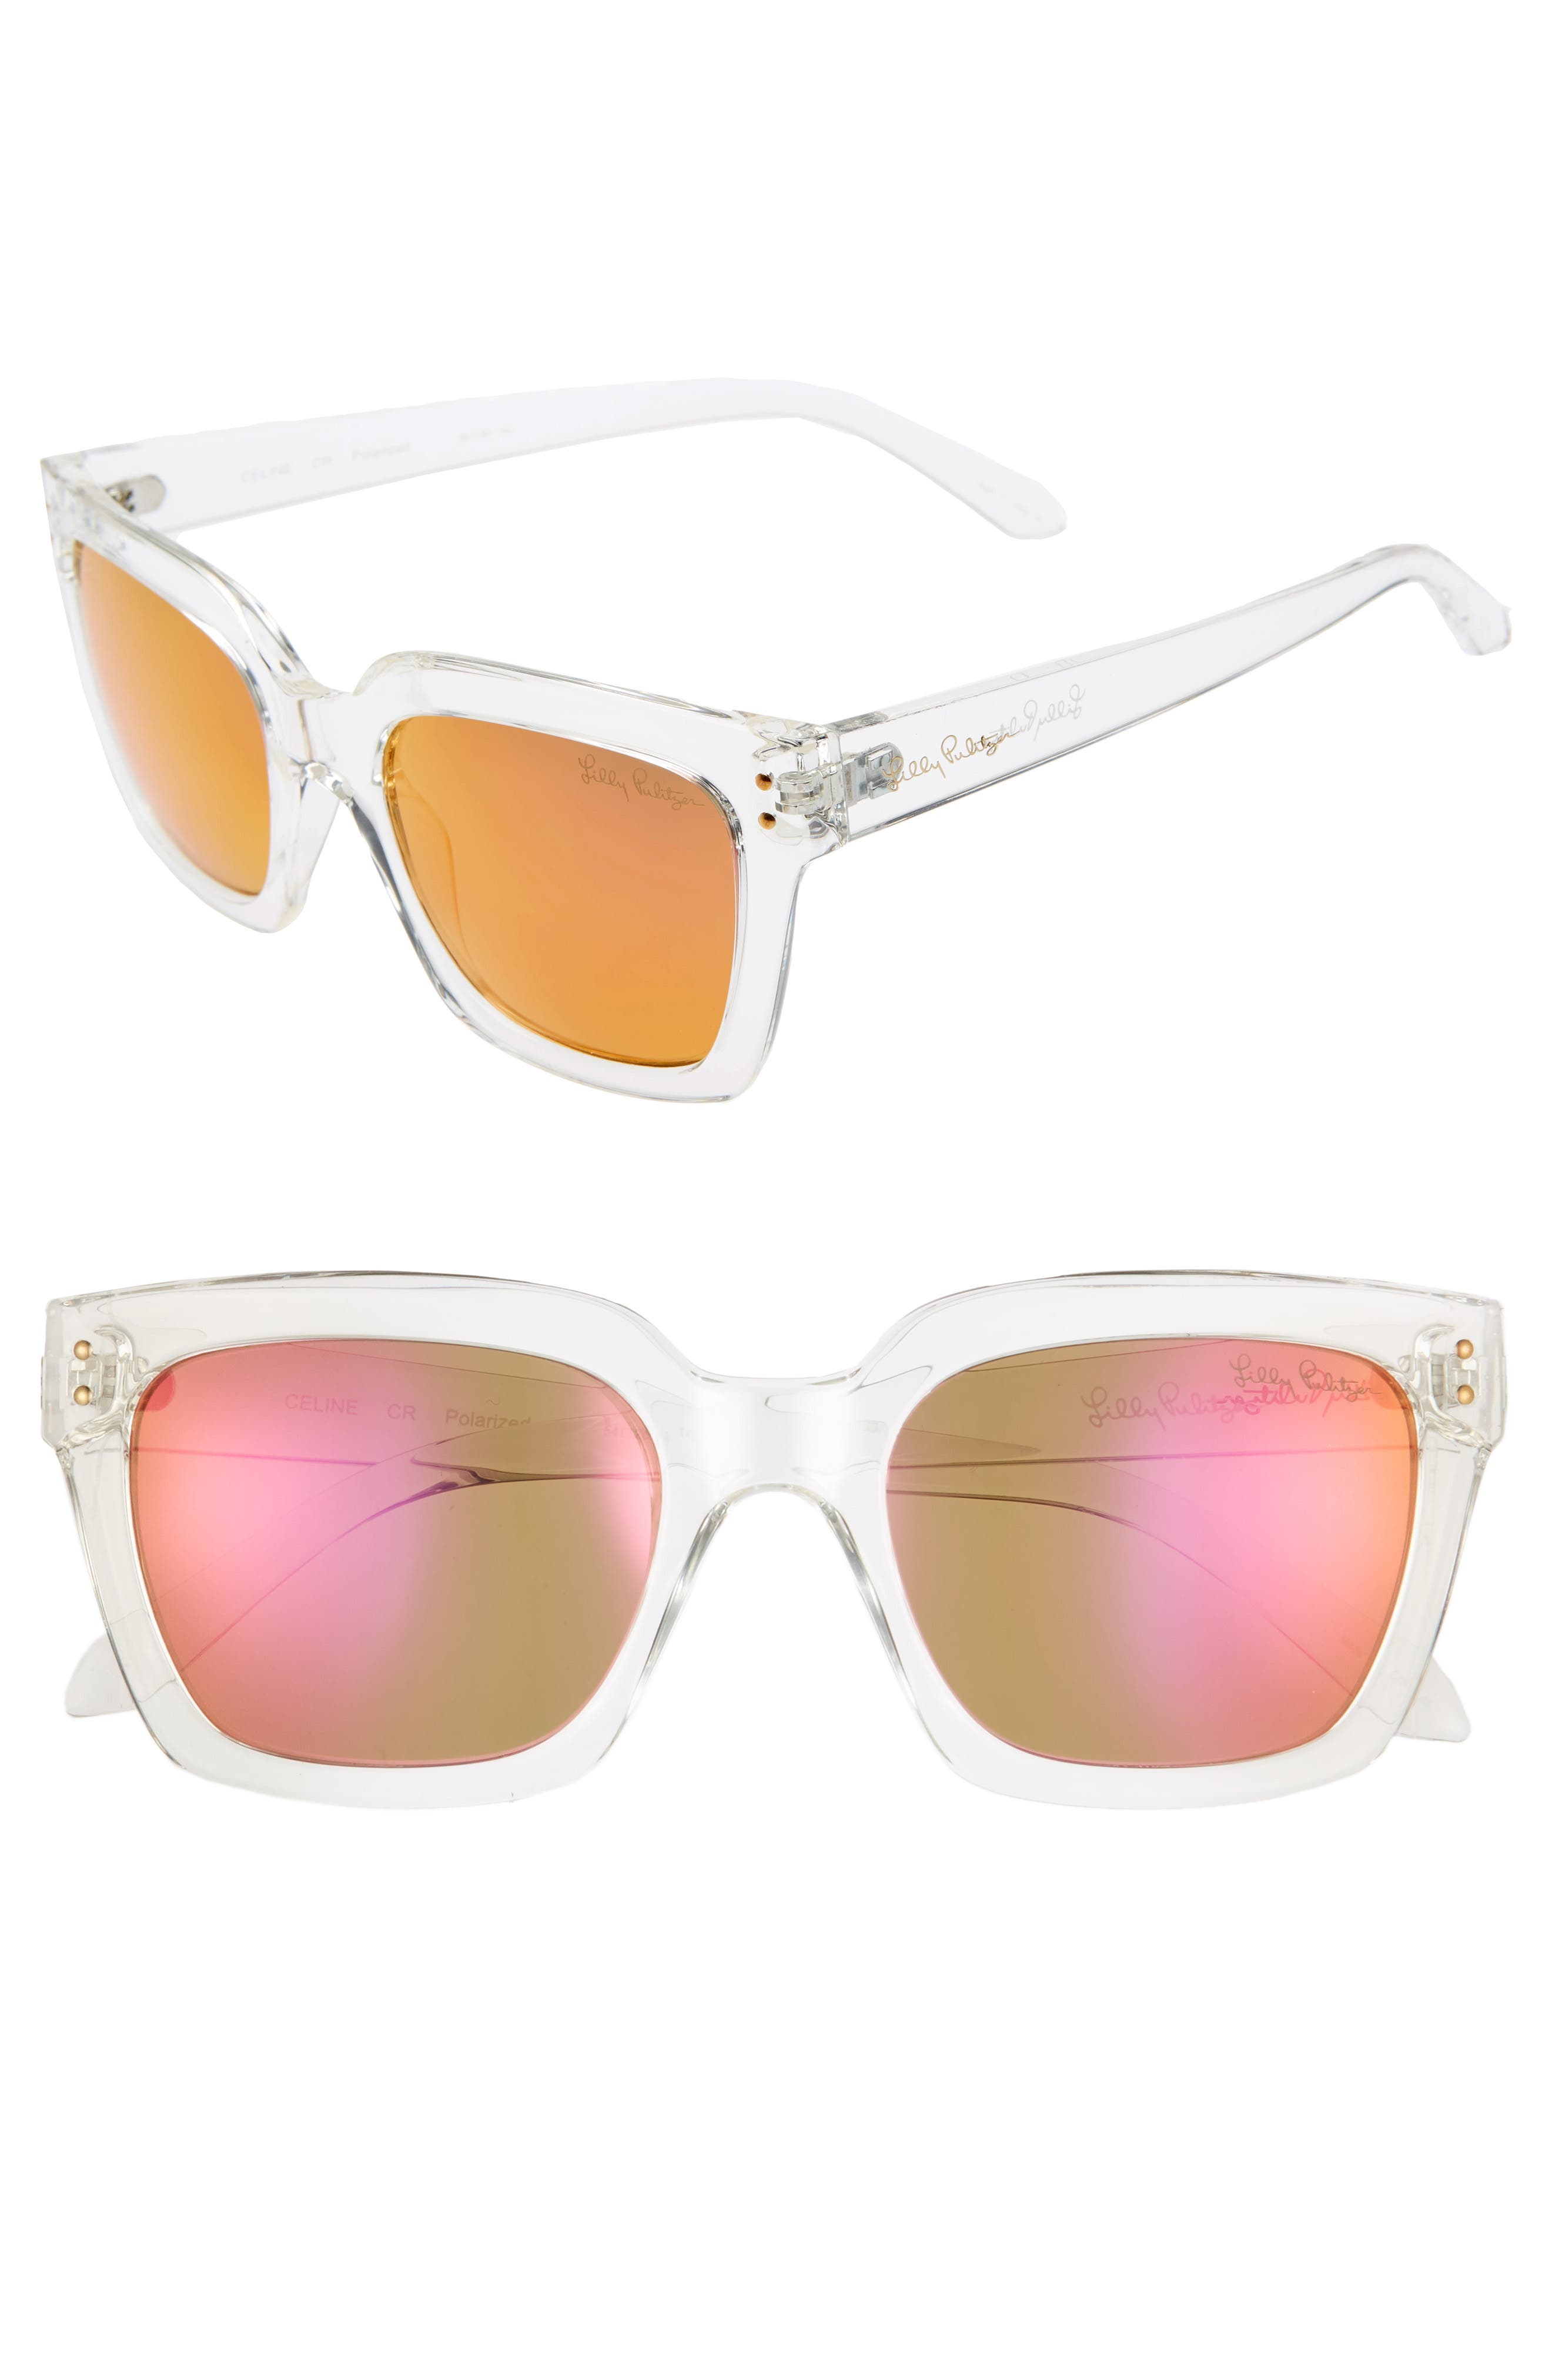 LILLY PULITZER<SUP>®</SUP> Lilly Pulitzer Celine 54mm Polarized Square Sunglasses, Main, color, CRYSTAL CLEAR/ PINK MIRROR